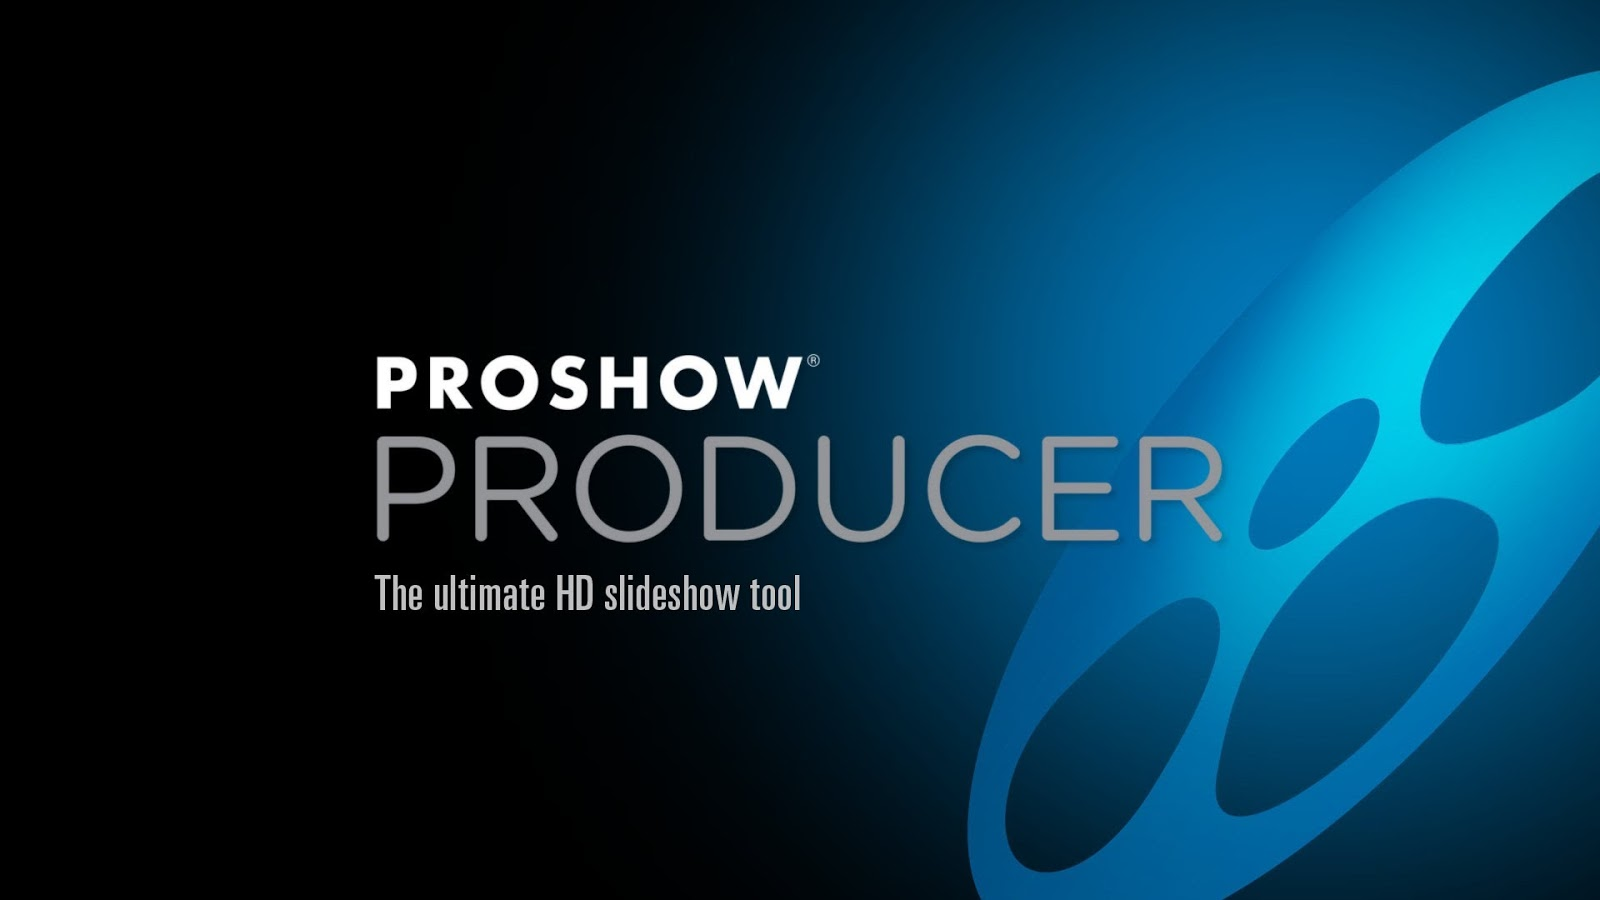 proshow producer 7.0 3527 serial number